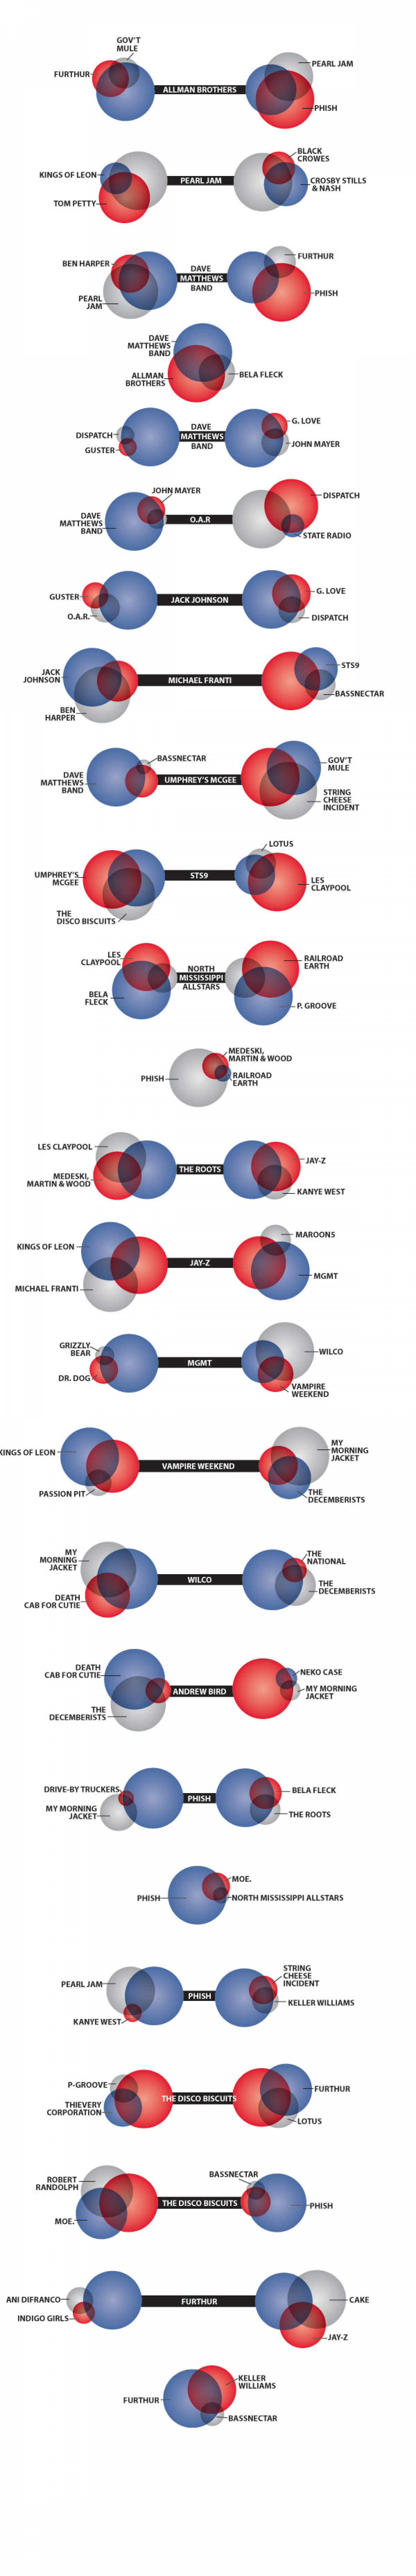 Fan DNA Venn Diagrams Infographic